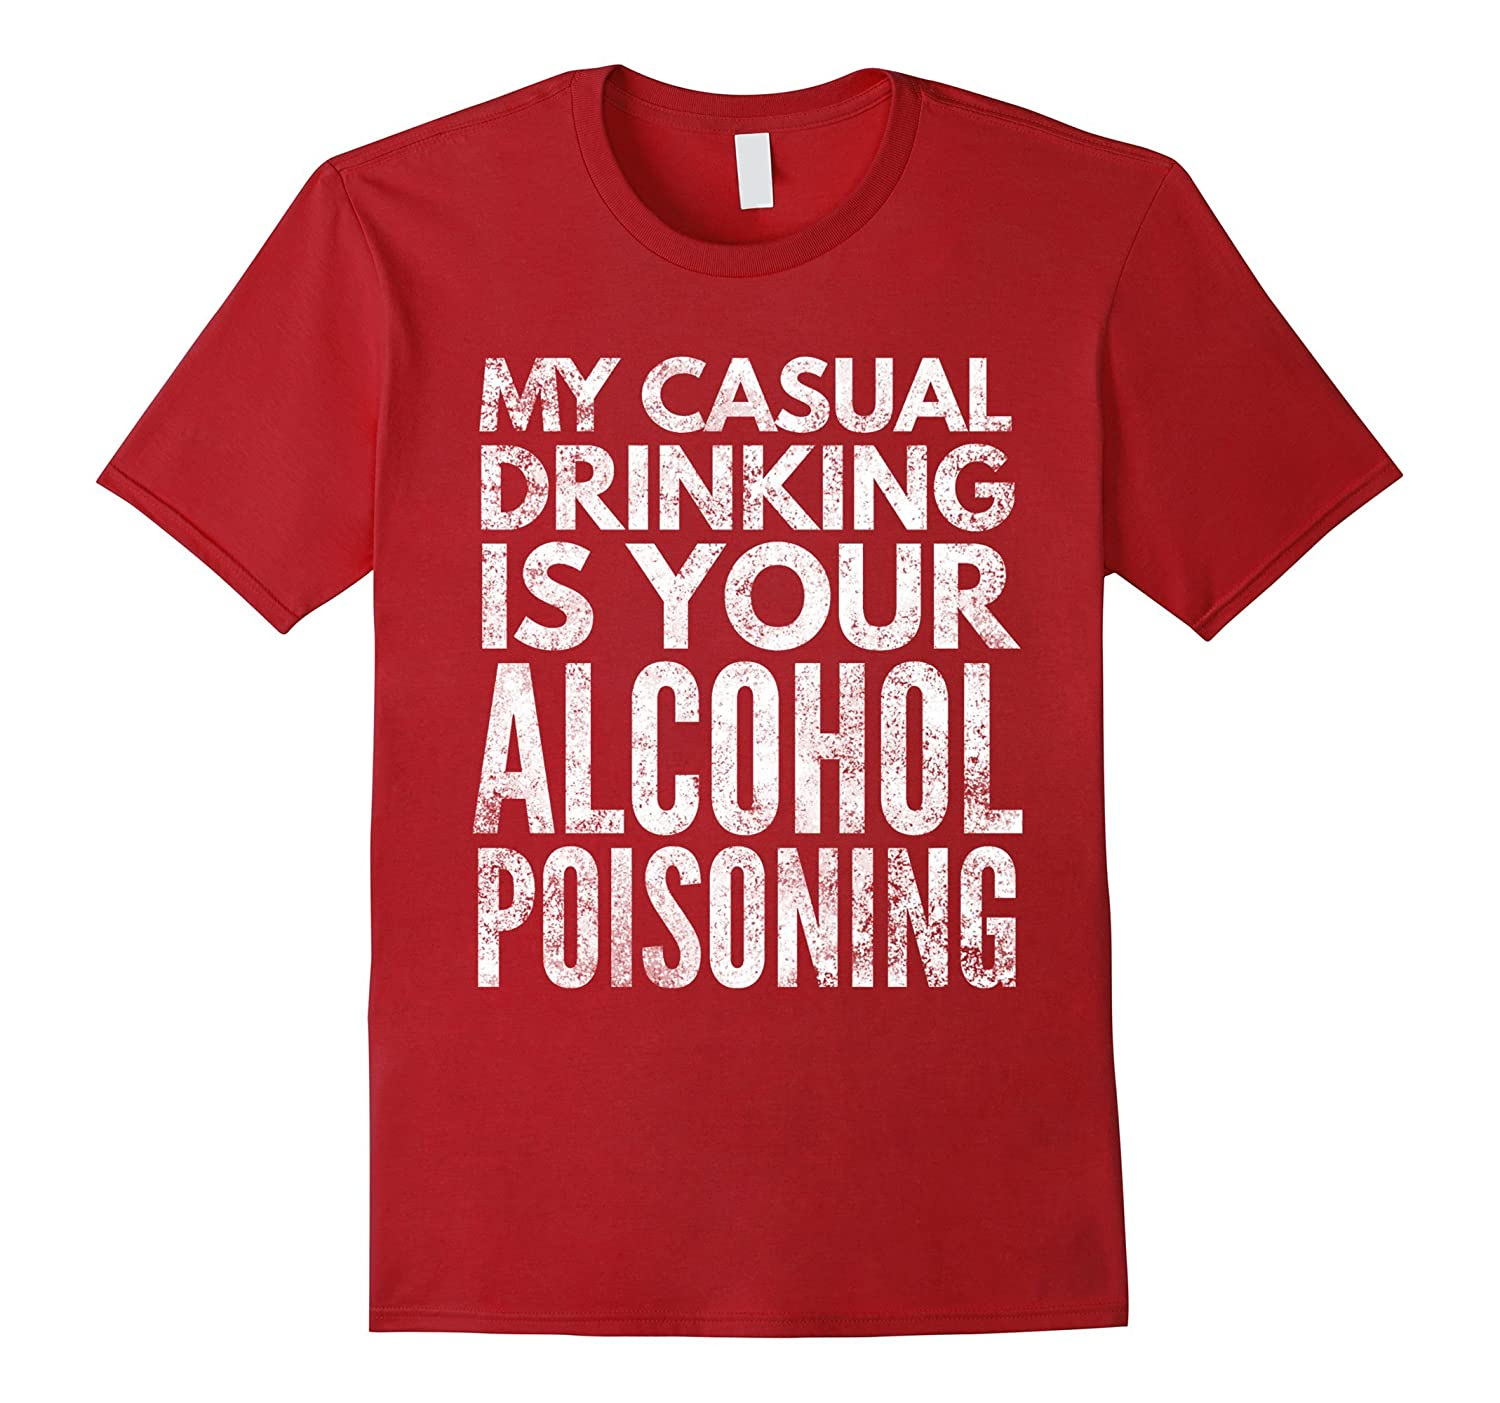 My casual drinking is your alcohol poisoning drinking shirt-ah my shirt one gift